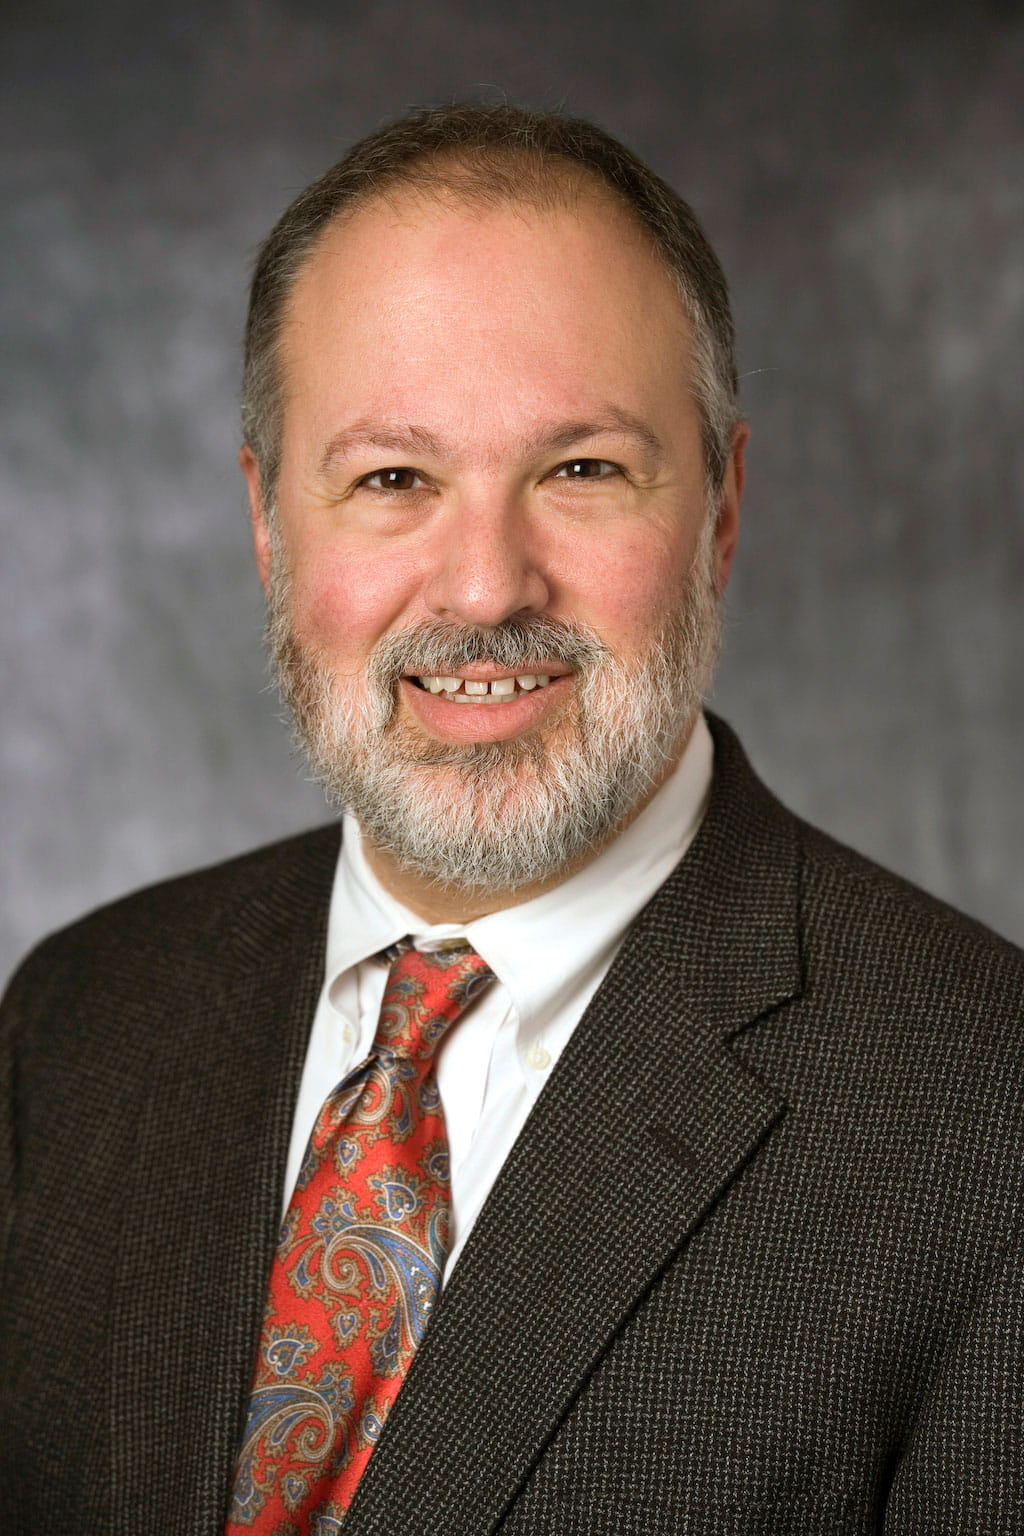 Photo of Robert Ronis MD MPH